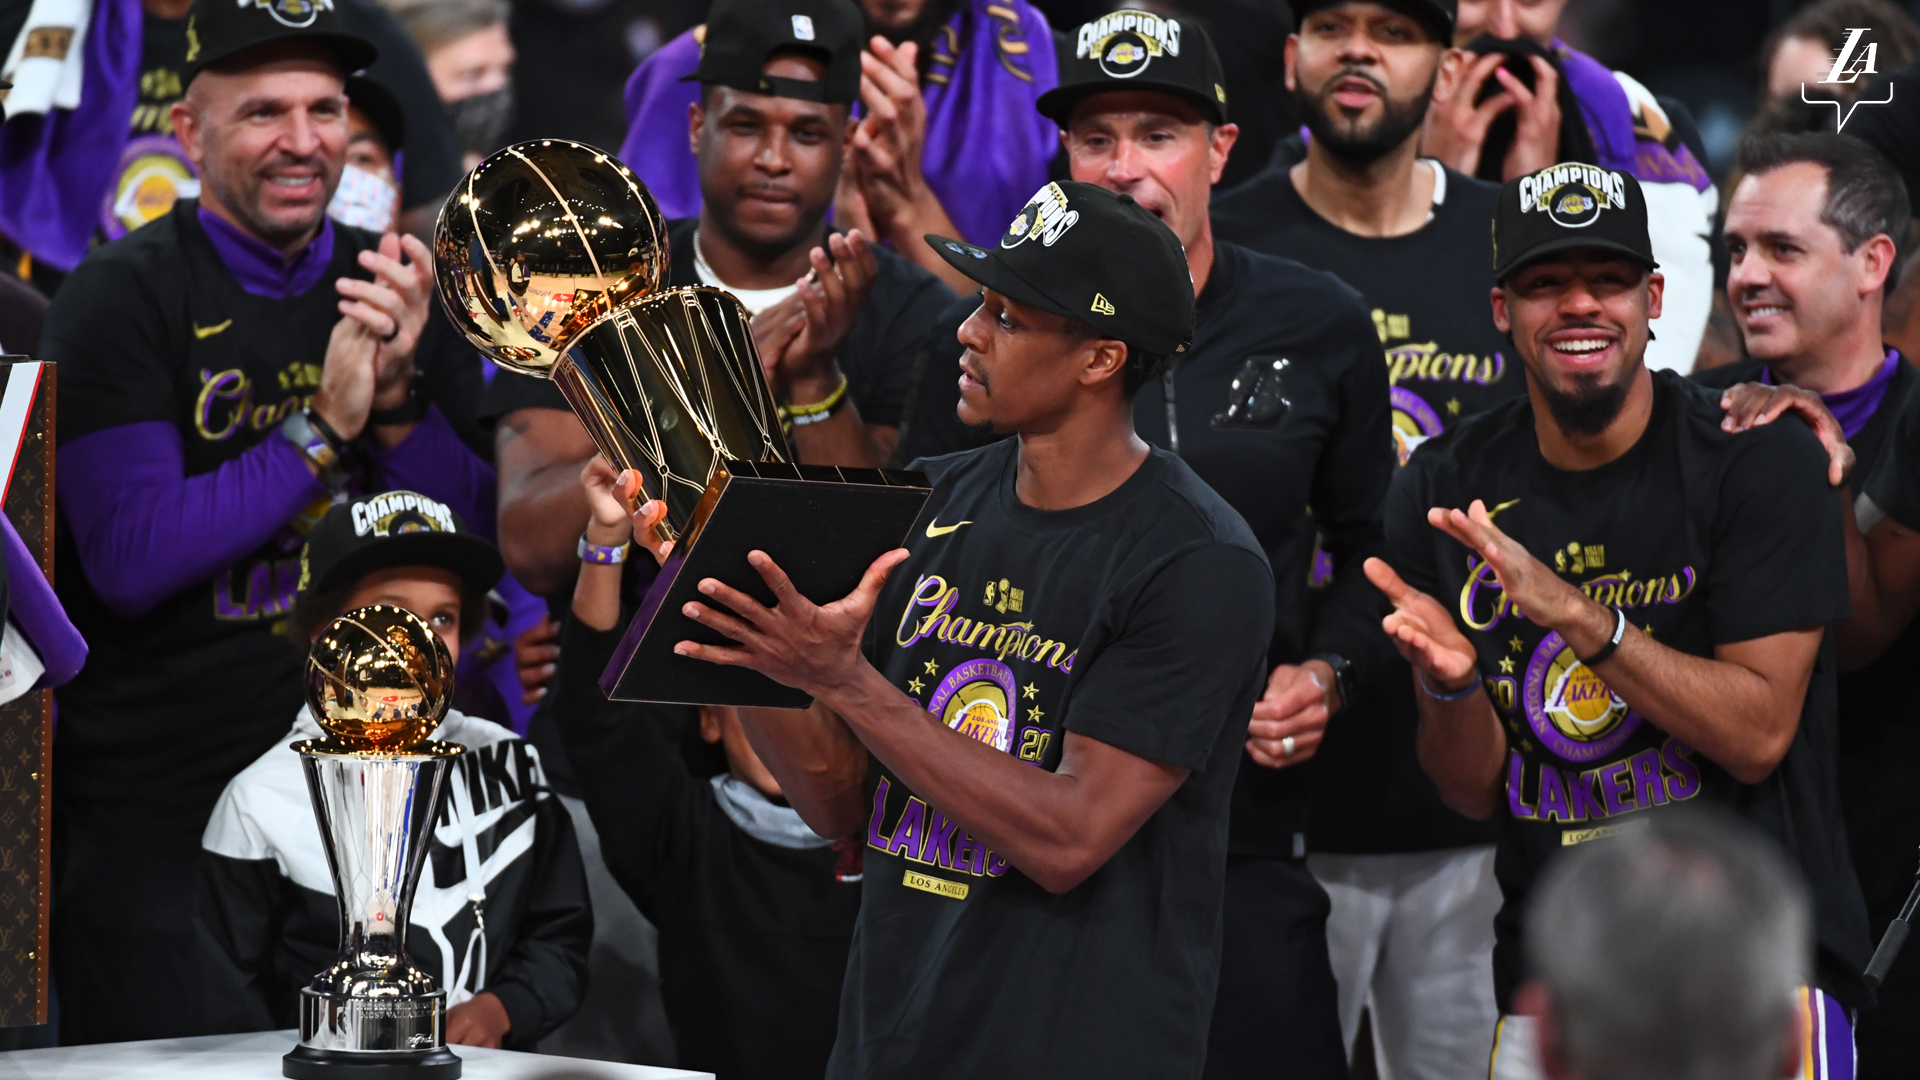 Crowds flood at downtown LA following Lakers 2020 championship victory